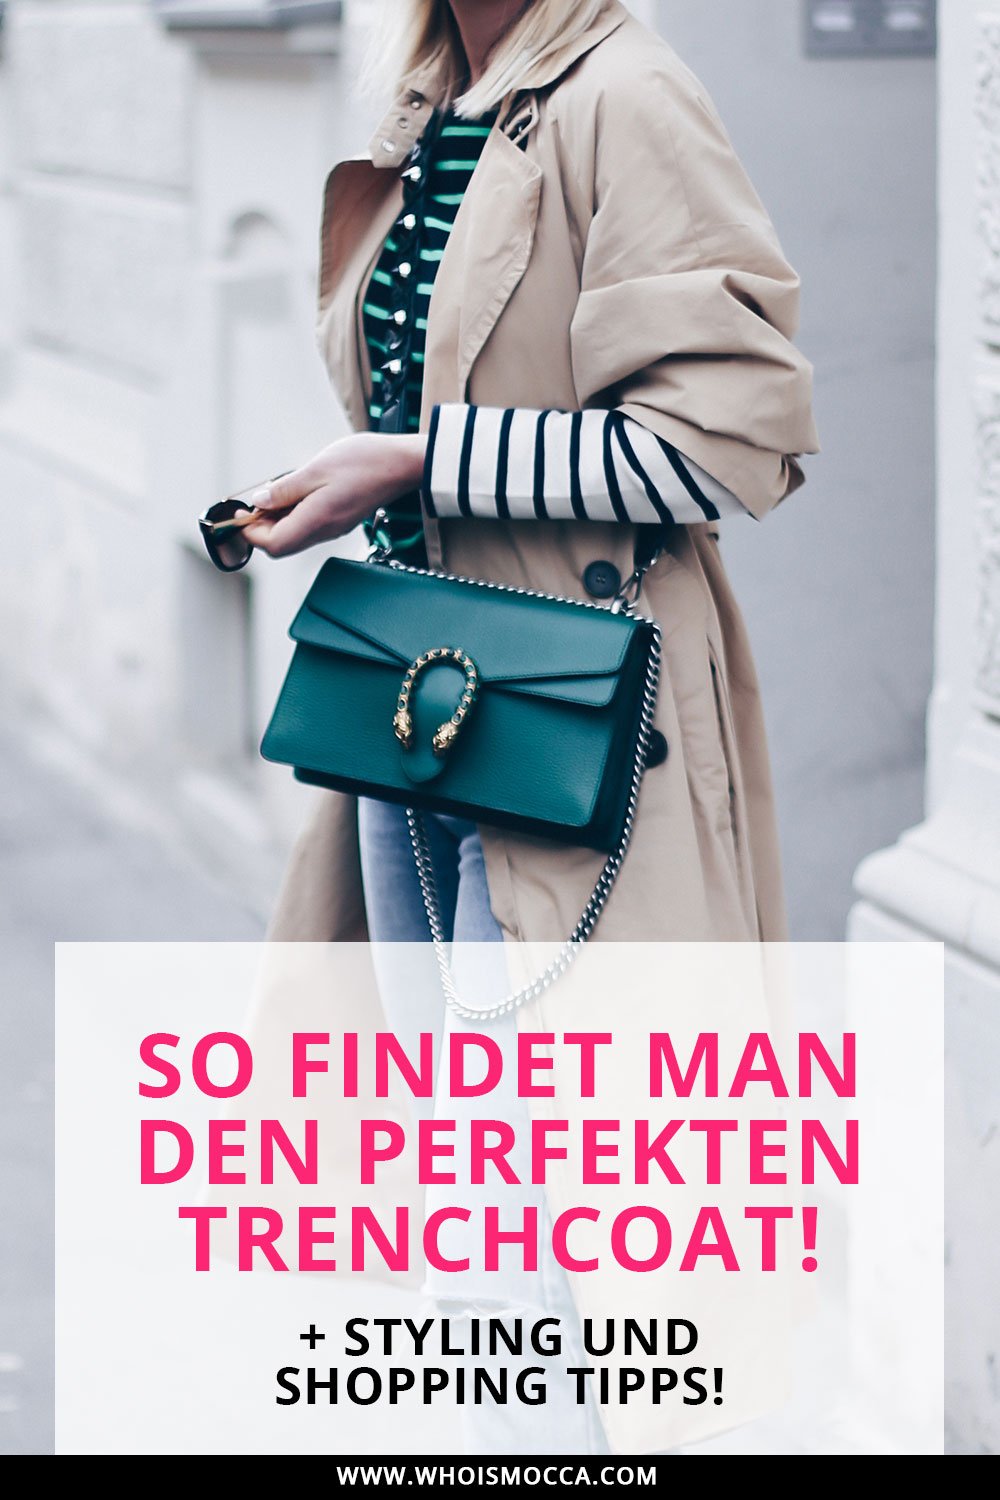 der perfekte Trenchcoat, so findet man ihn, Styling und Shopping Tipps, Outfit Ideen, Inspirationen, Fashion Blog, Modeblog, www.whoismocca.com